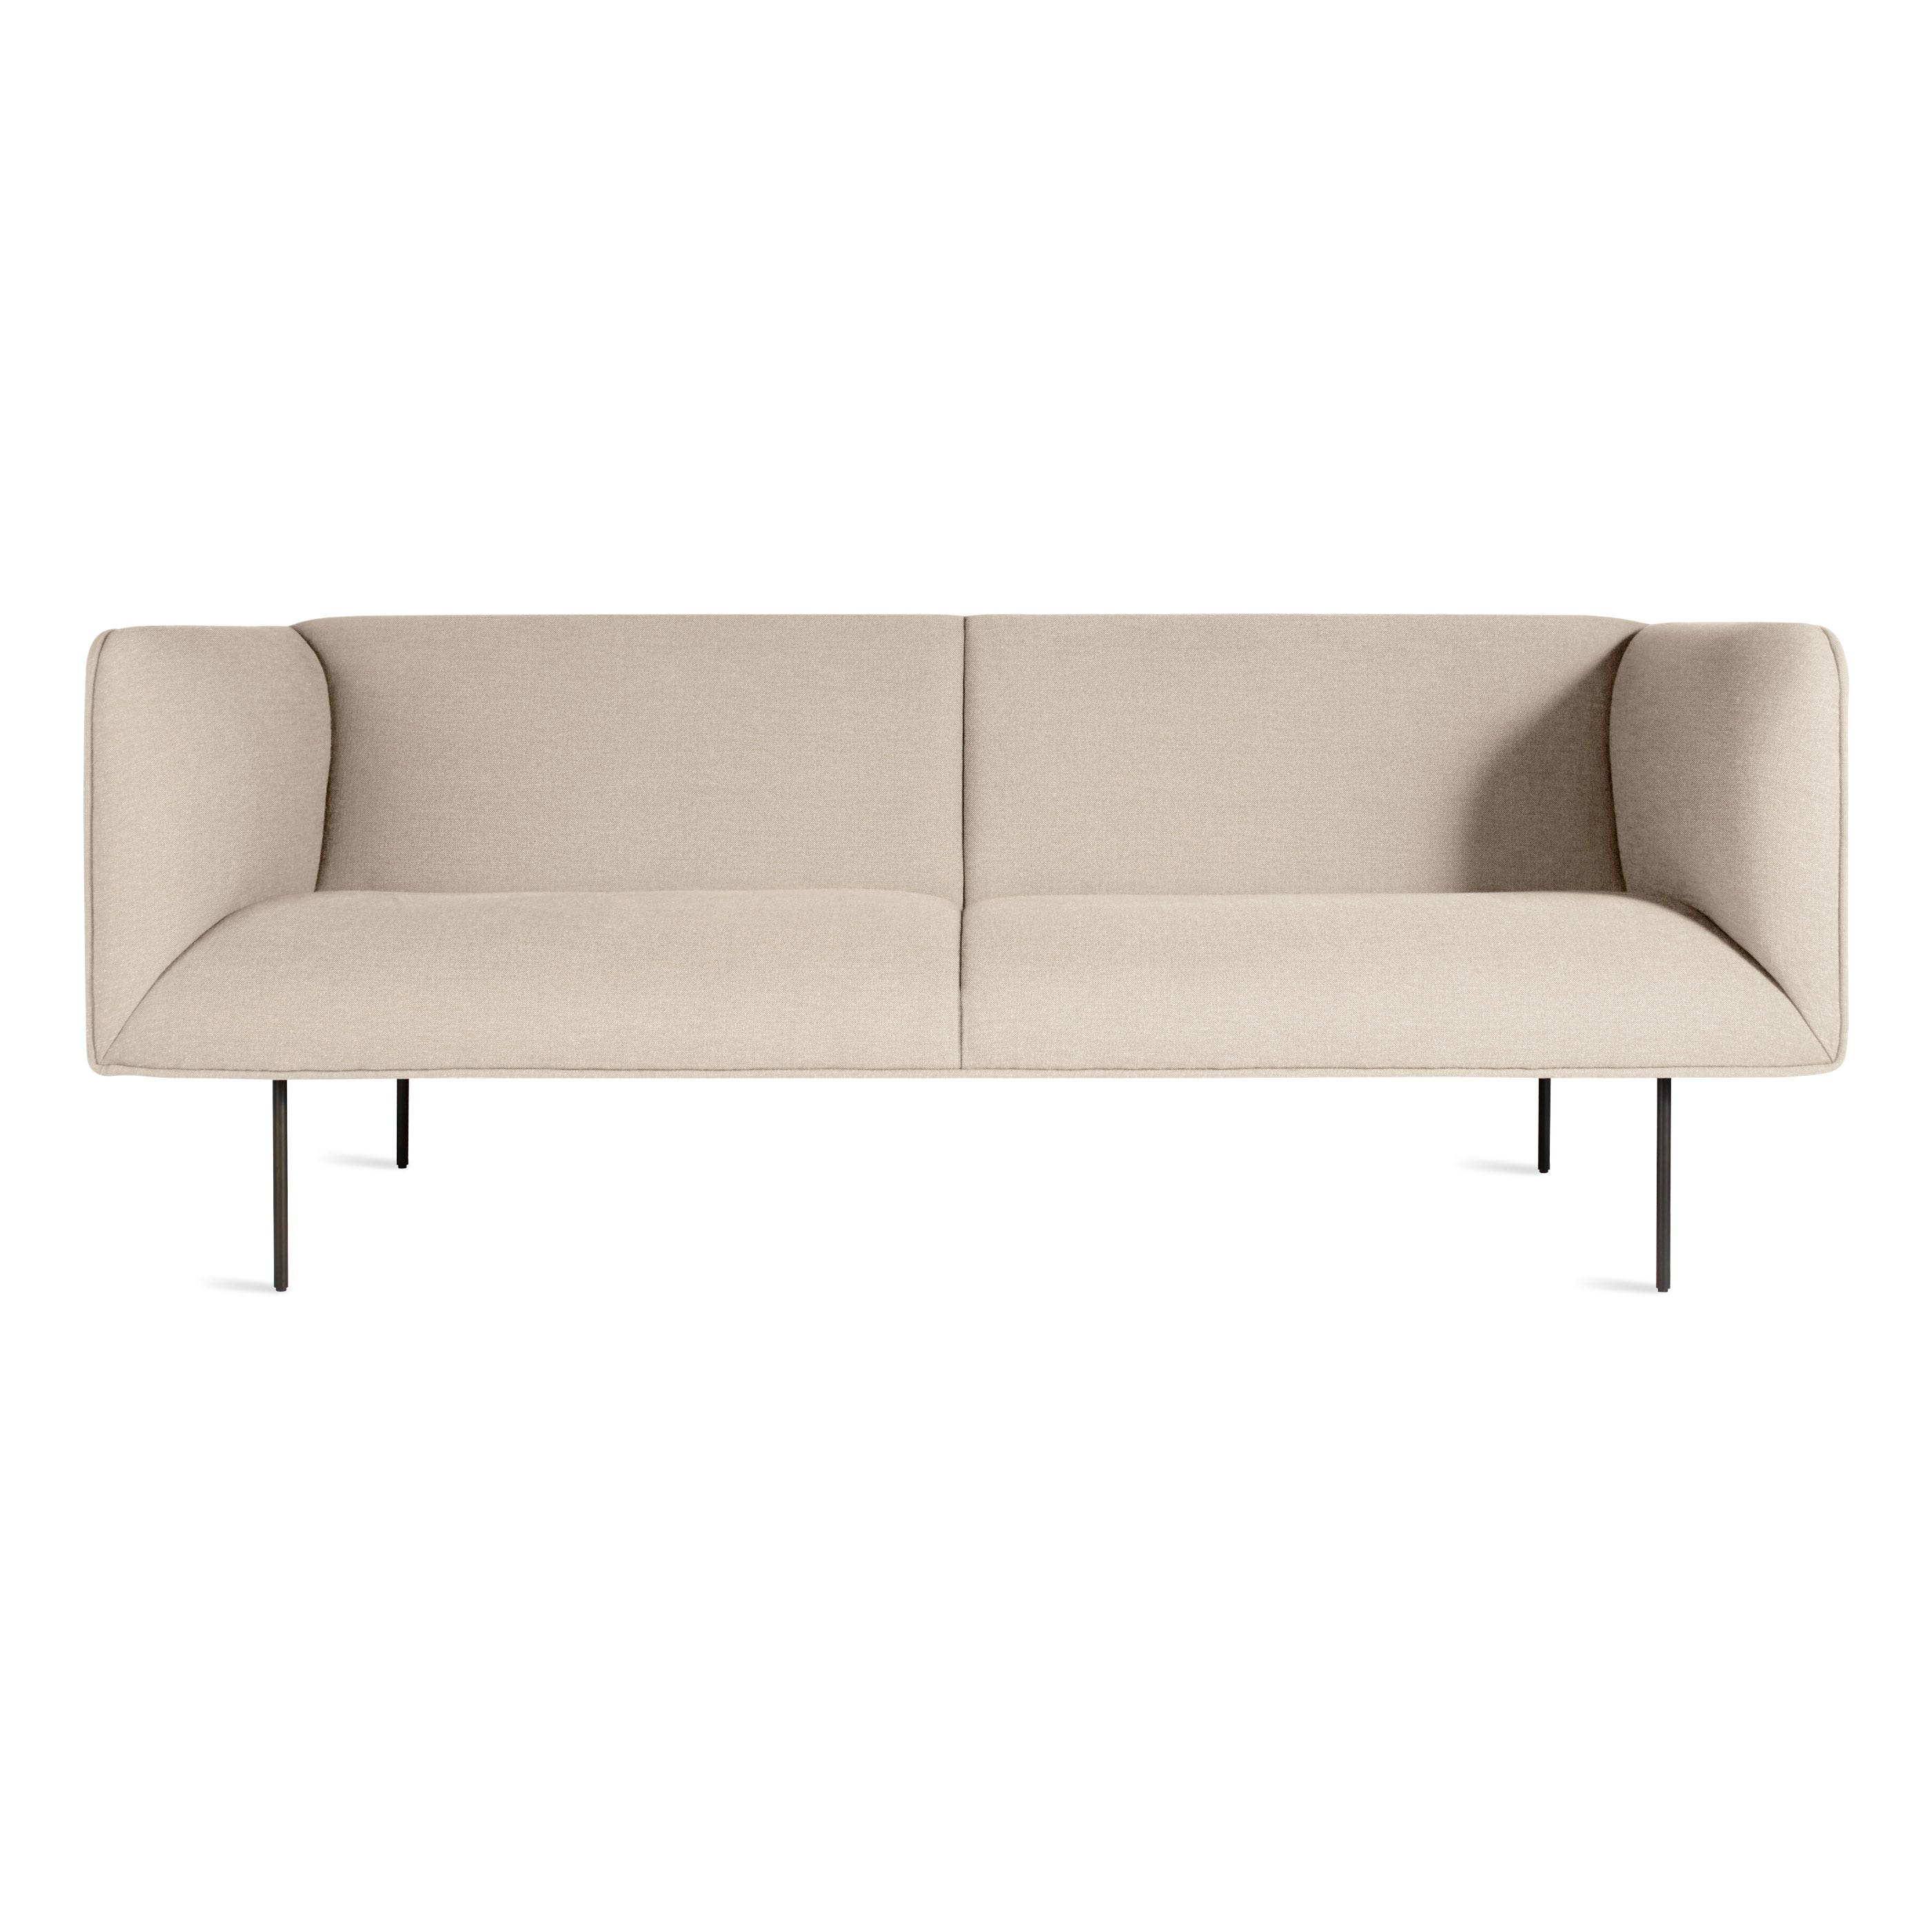 "Dandy 86"" Fabric Sofa Modern Fabric Sofa"